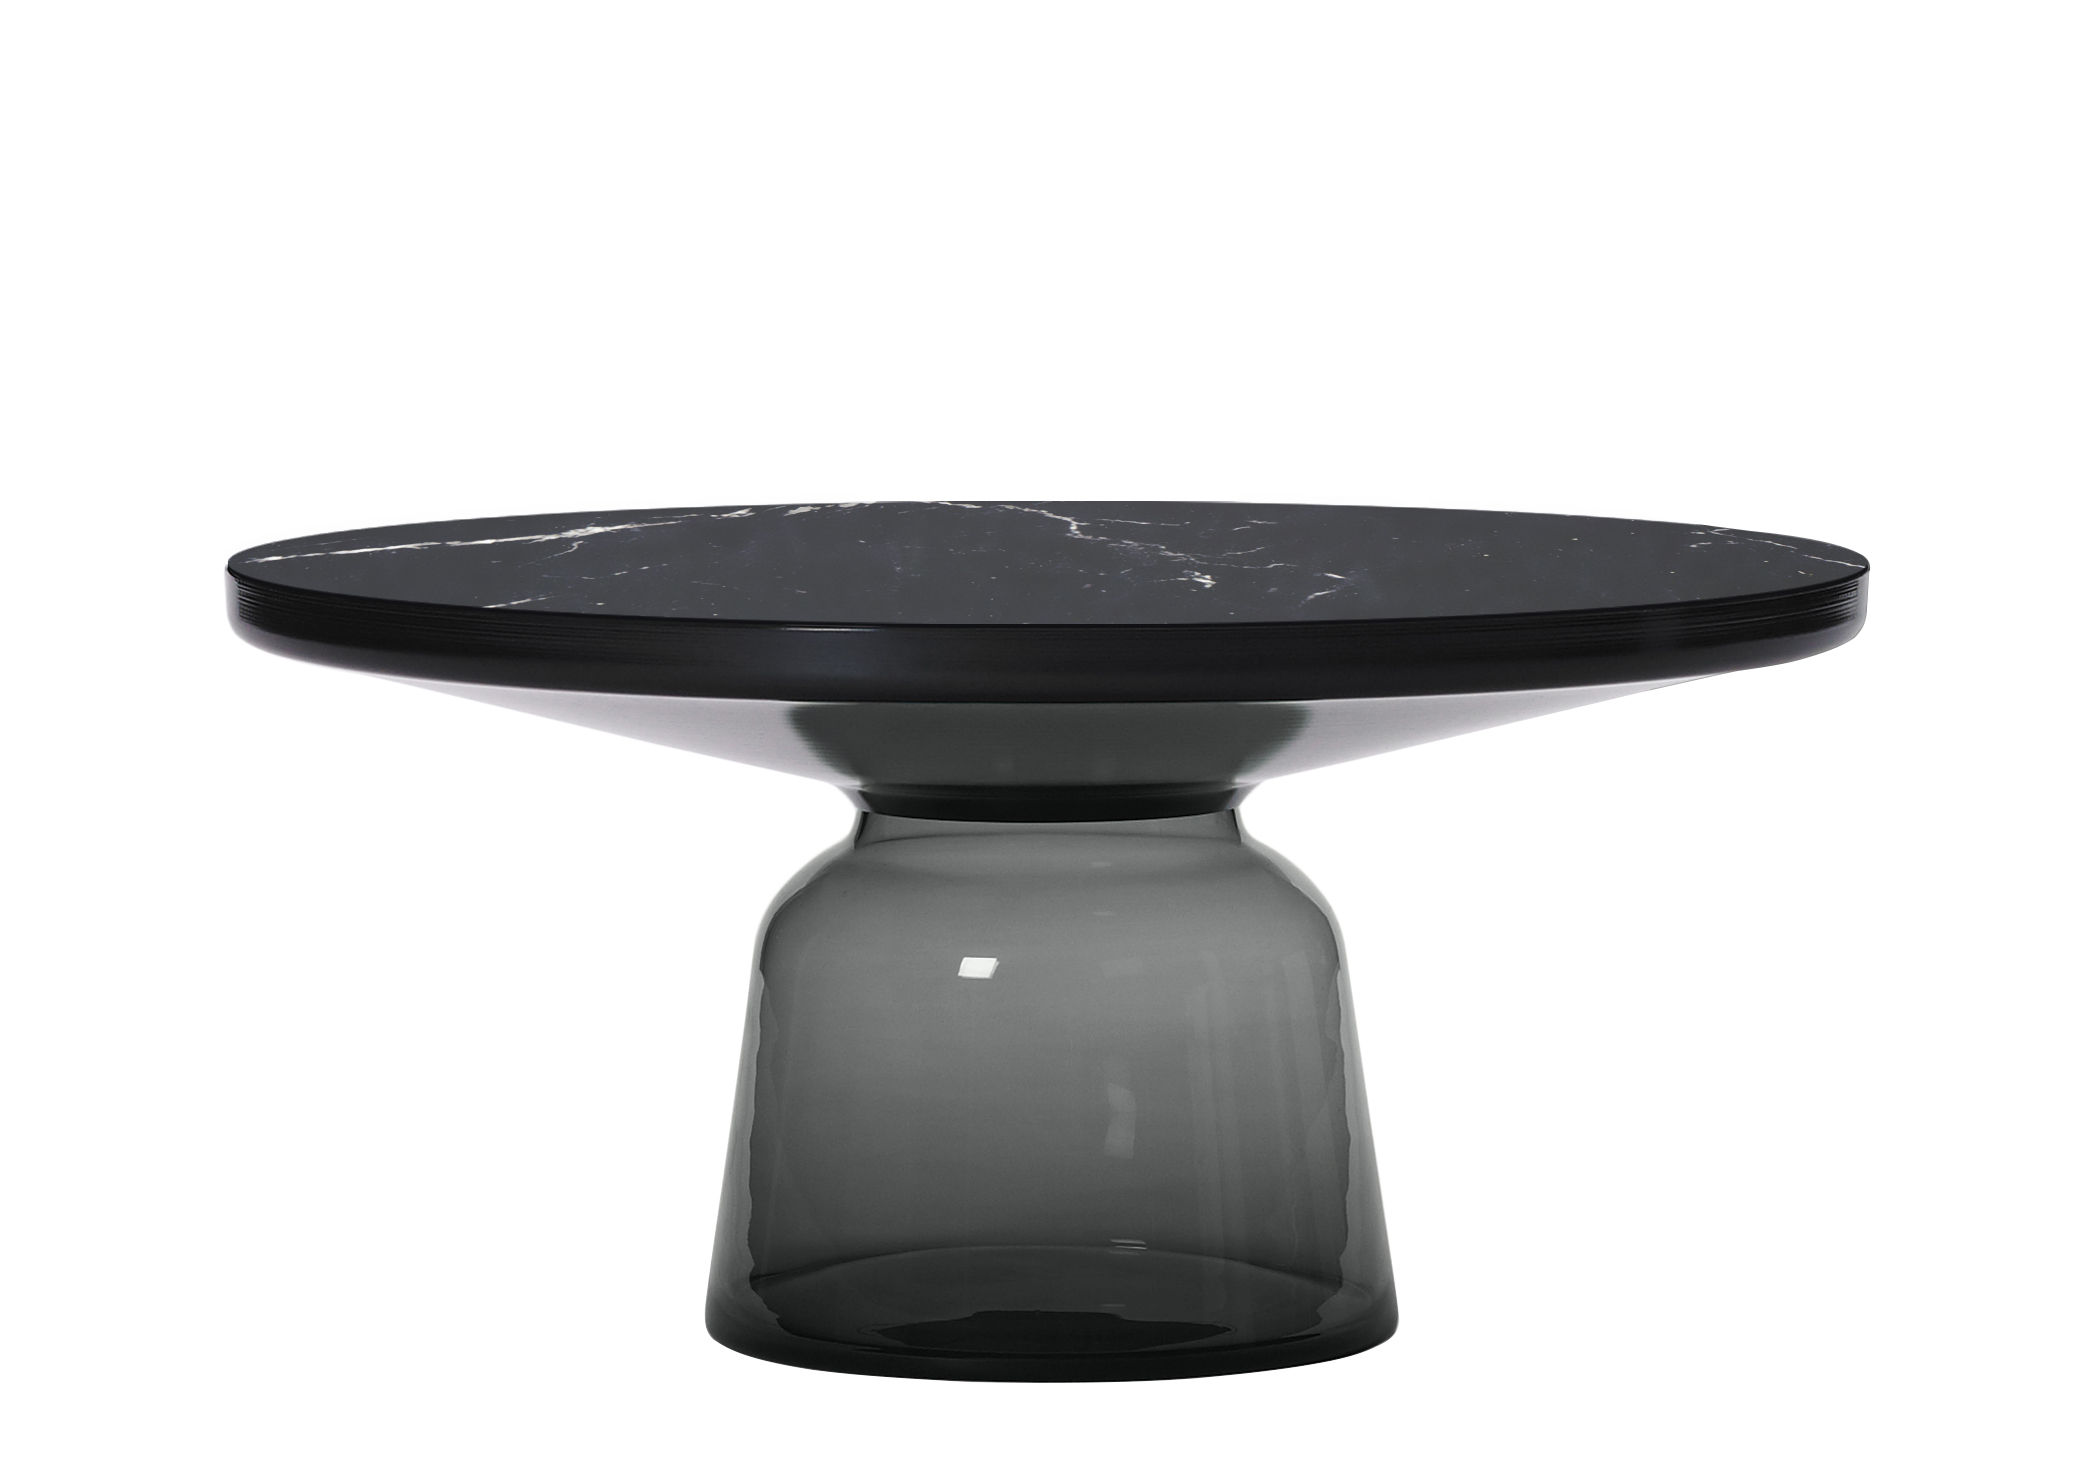 Furniture - Coffee Tables - Bell Coffee Coffee table - / Ø 75 x H 36 cm - Marble table top by ClassiCon - Black marble / Quartz grey / Black - Blown glass, Marble, Steel